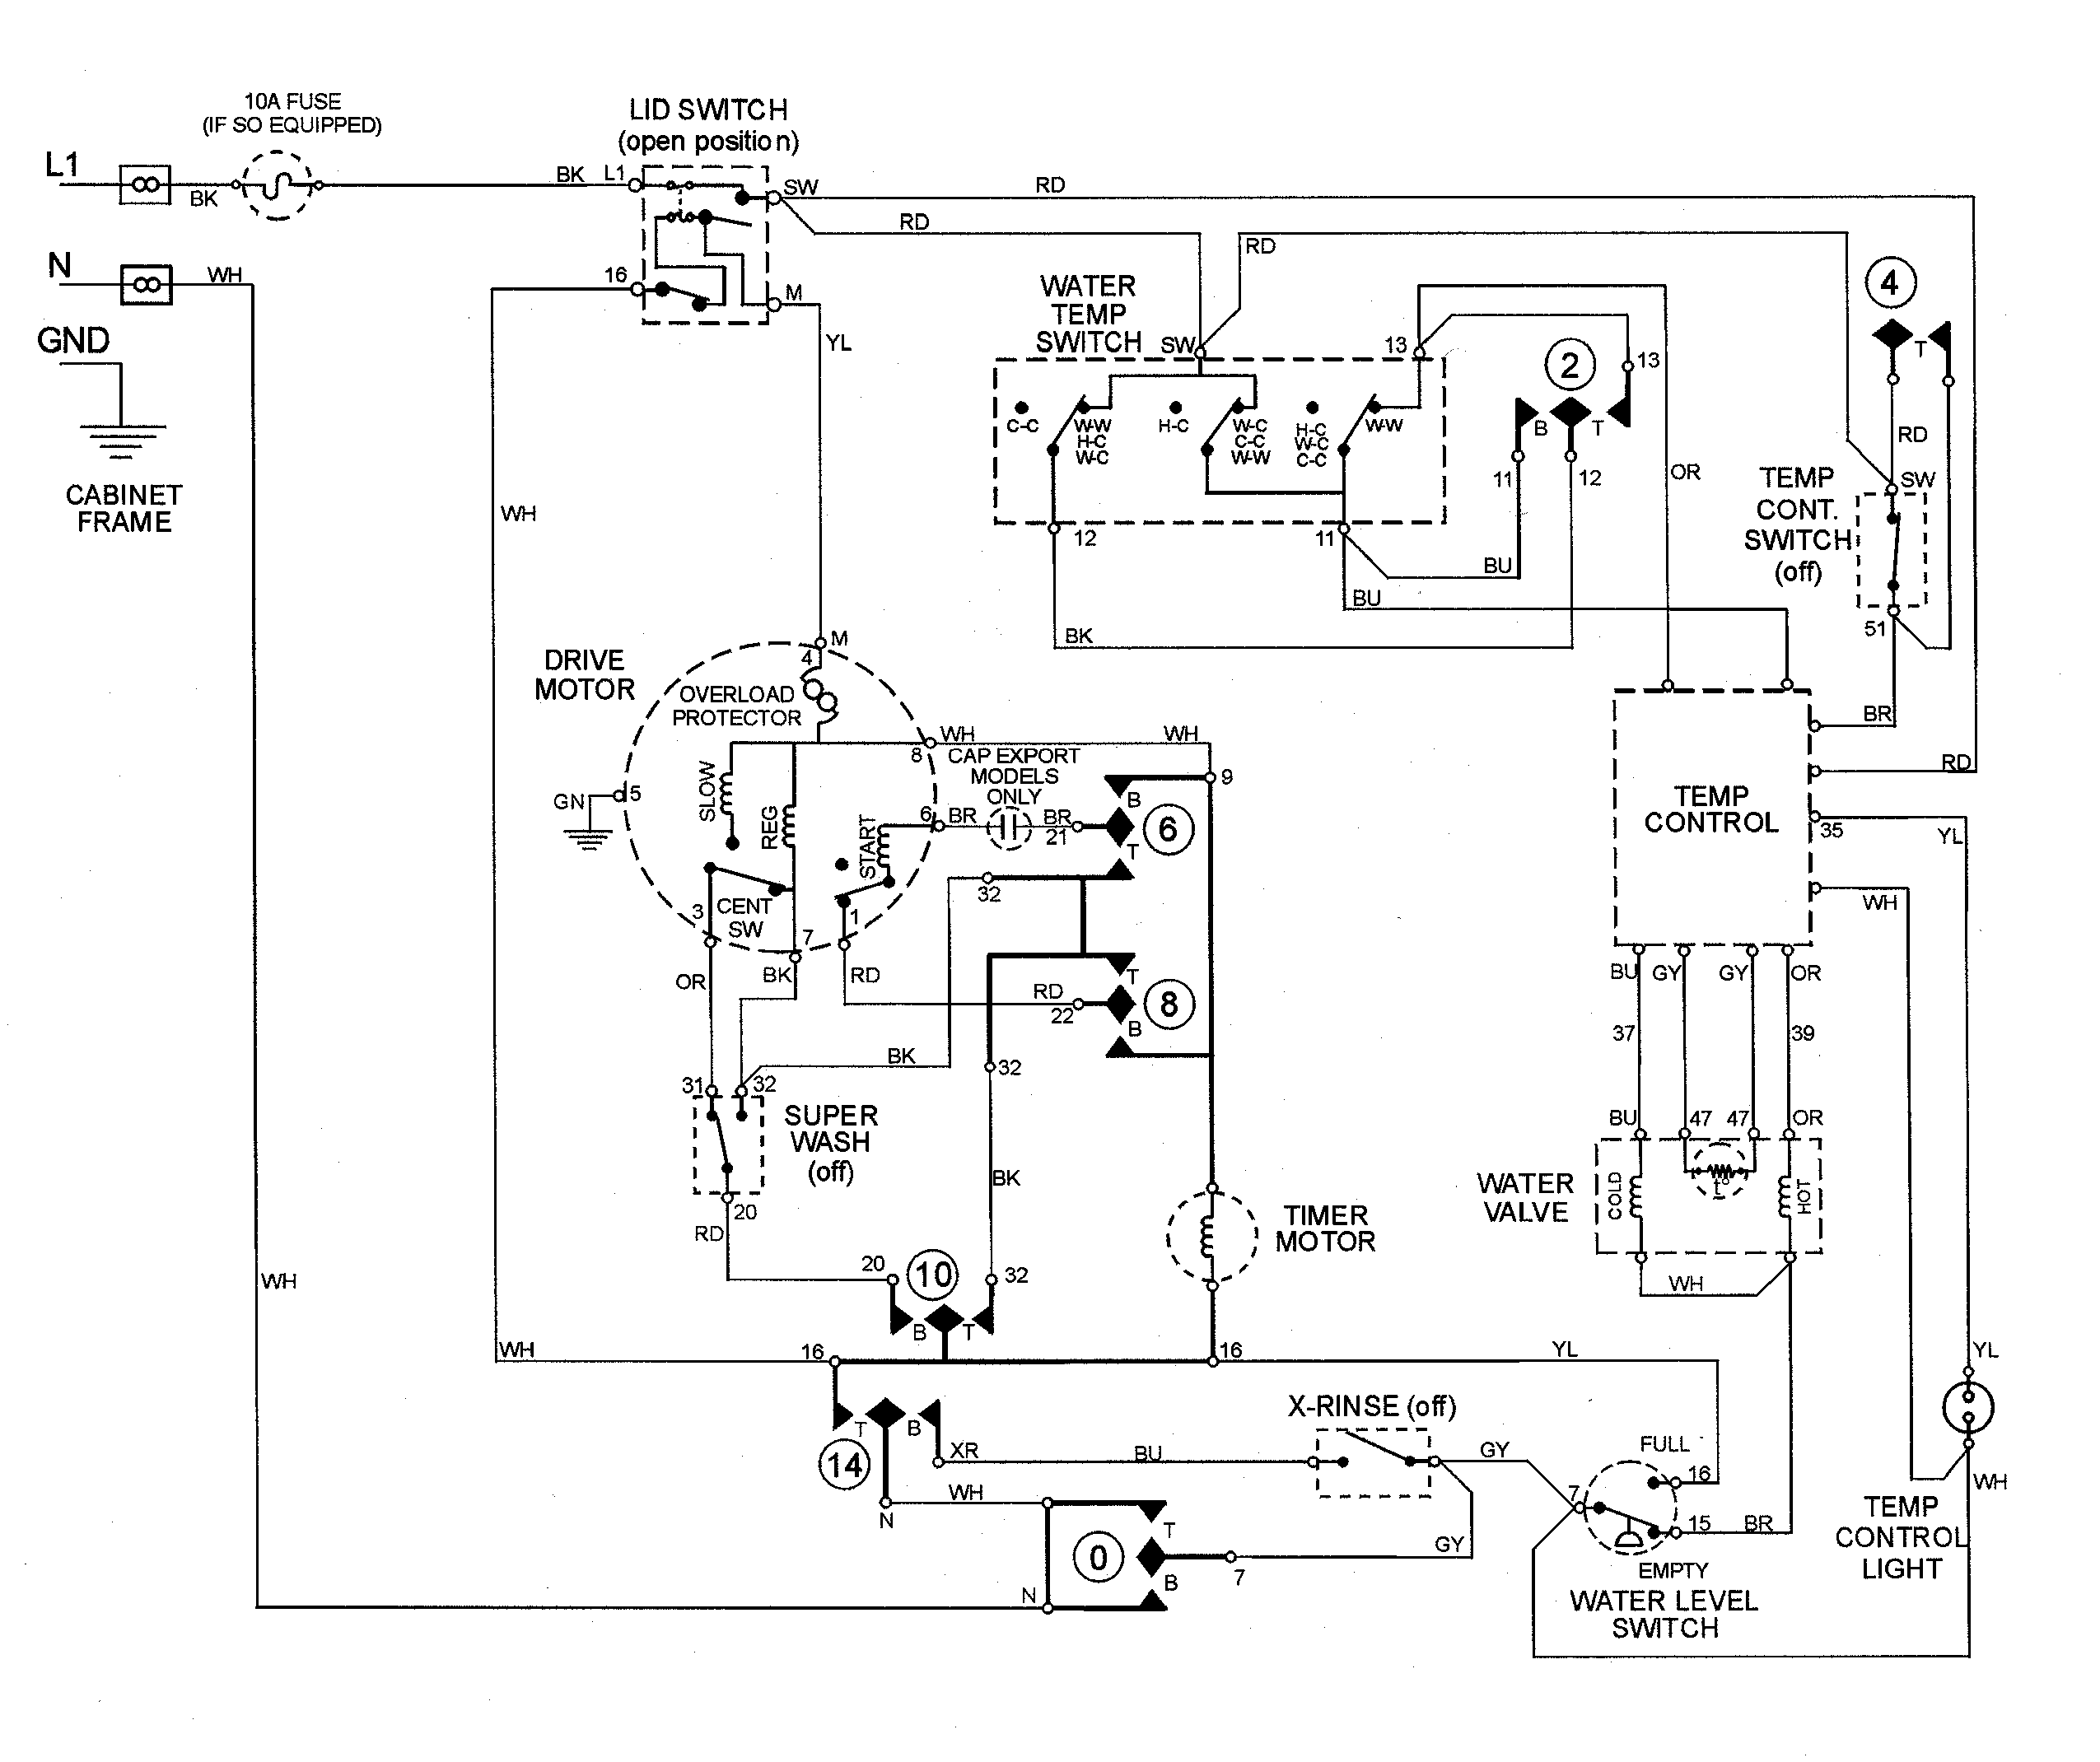 dbfe84c1294a289a6a6d42ba64109ee4 washing machine motor wiring diagram Chevrolet Truck Schematics at edmiracle.co